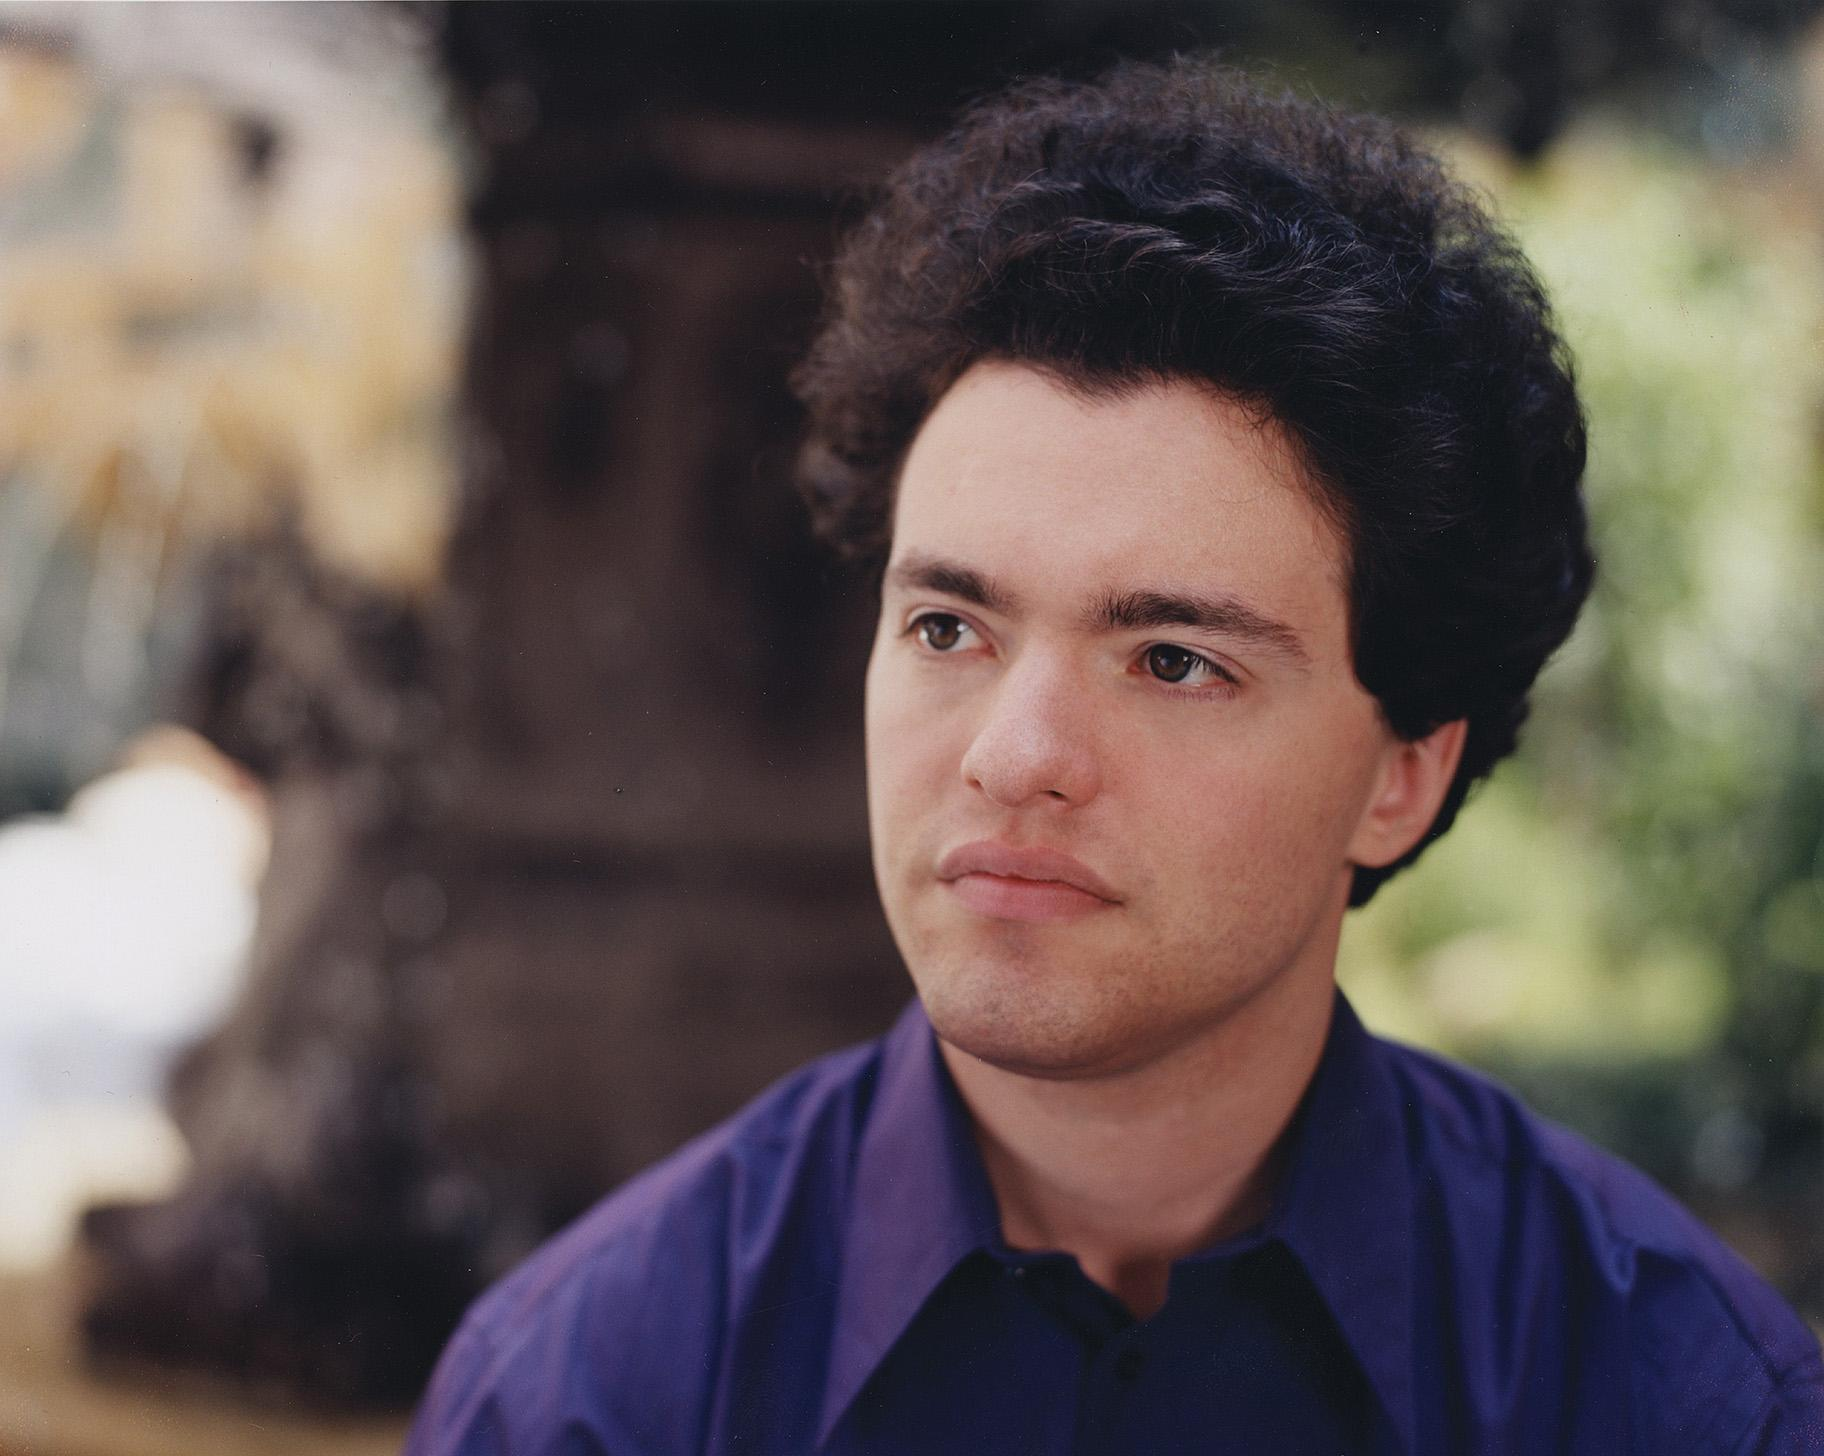 Pianist Evgeny Kissin. (Credit: Bette Marshall)